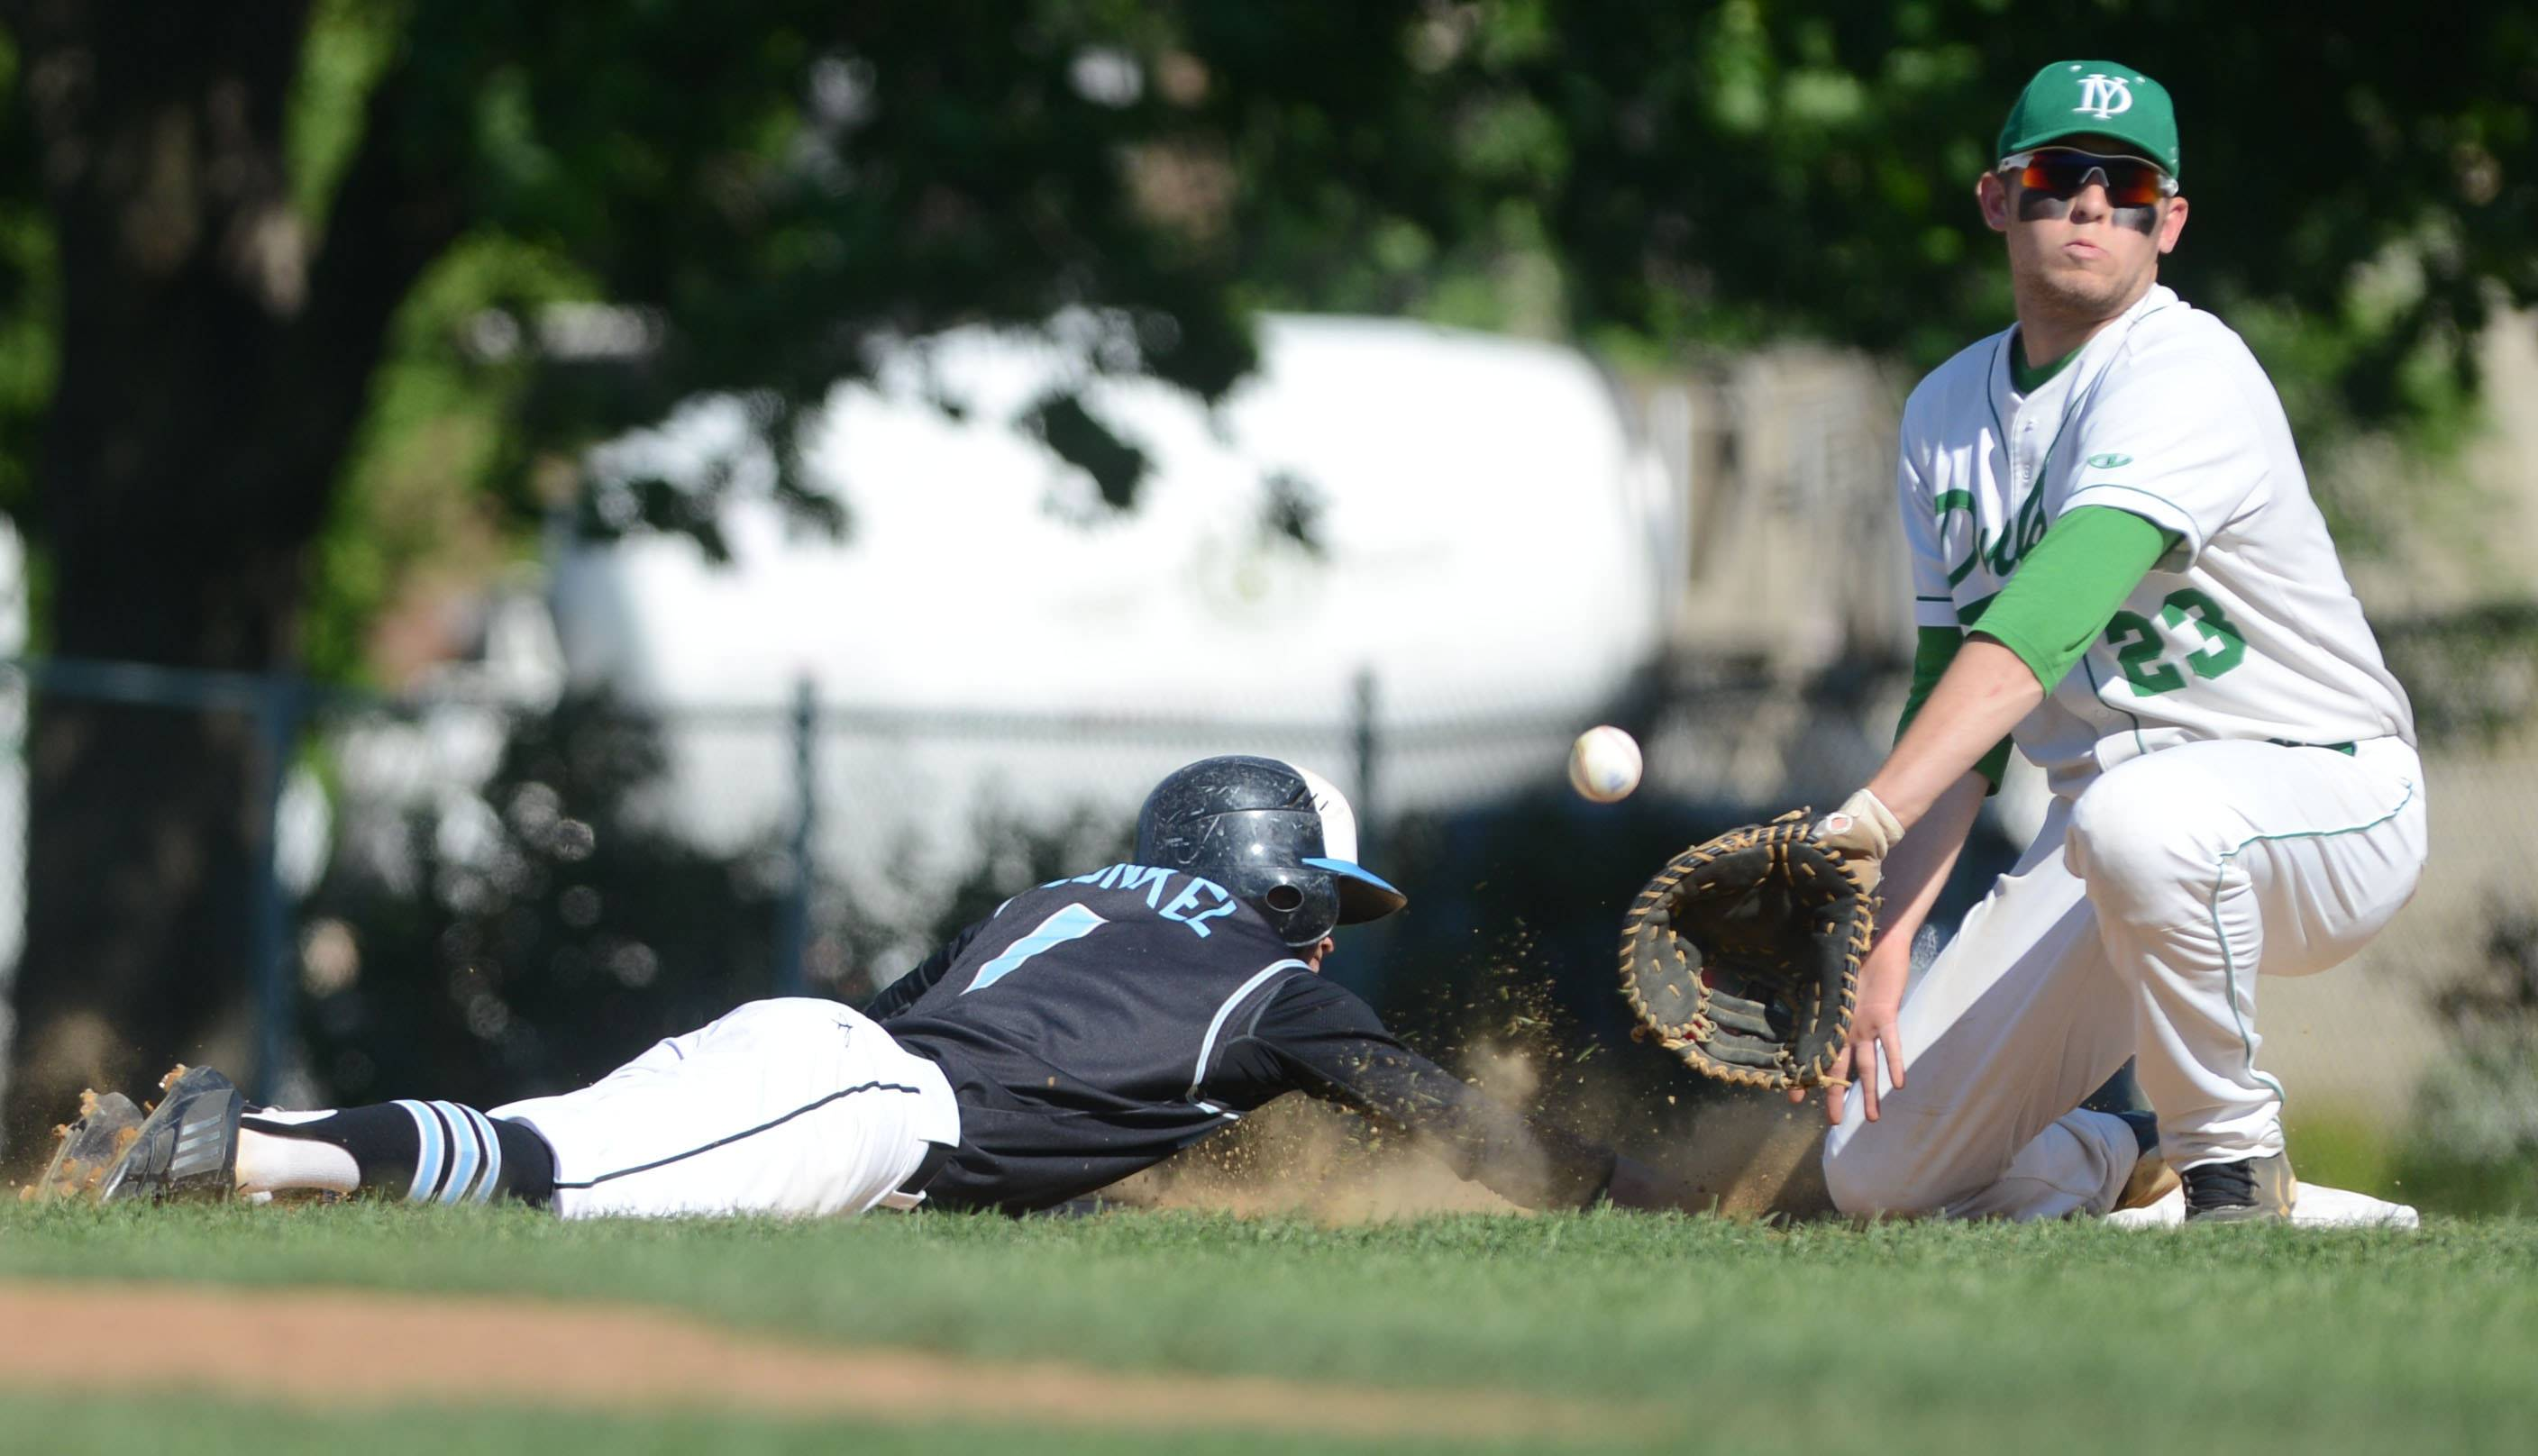 Anthony Santos of York gets ready to put the tag on Tyler Zunkel of Willowbrook during the Willowbrook at York baseball game Thursday.